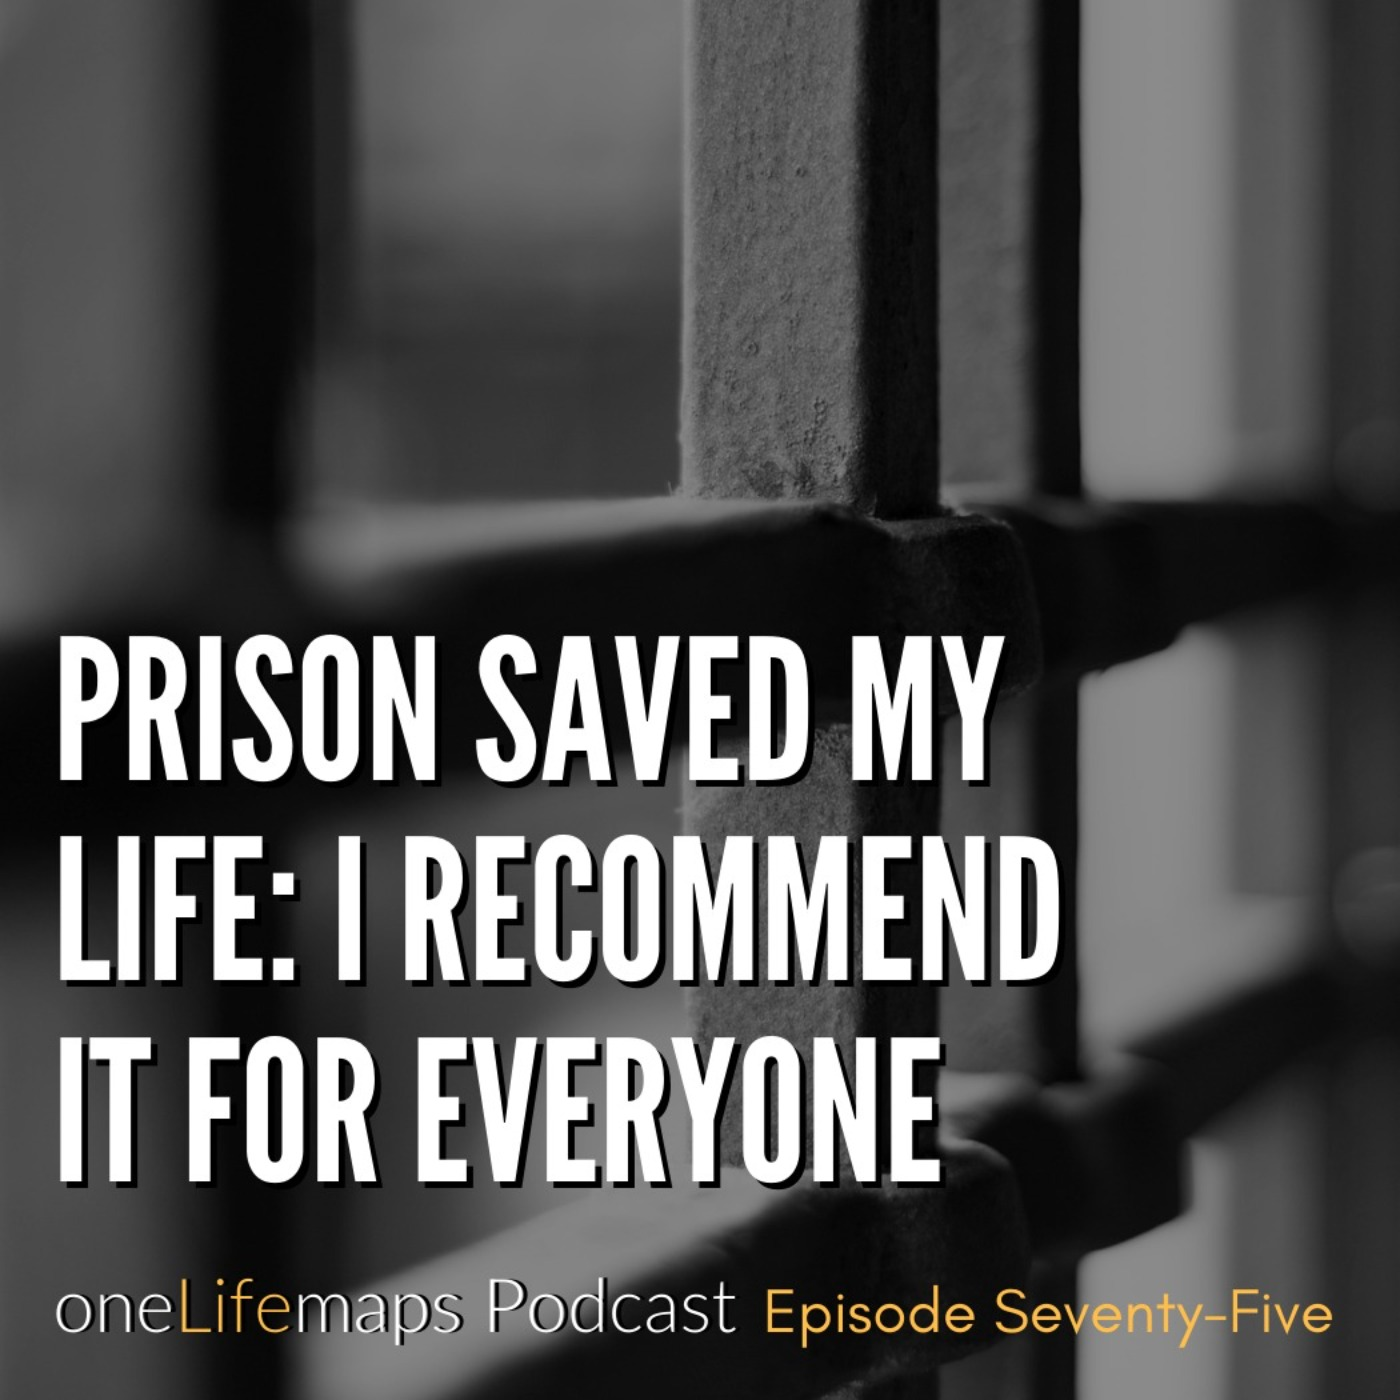 75. Prison Saved My Life: I Recommend it for Everyone